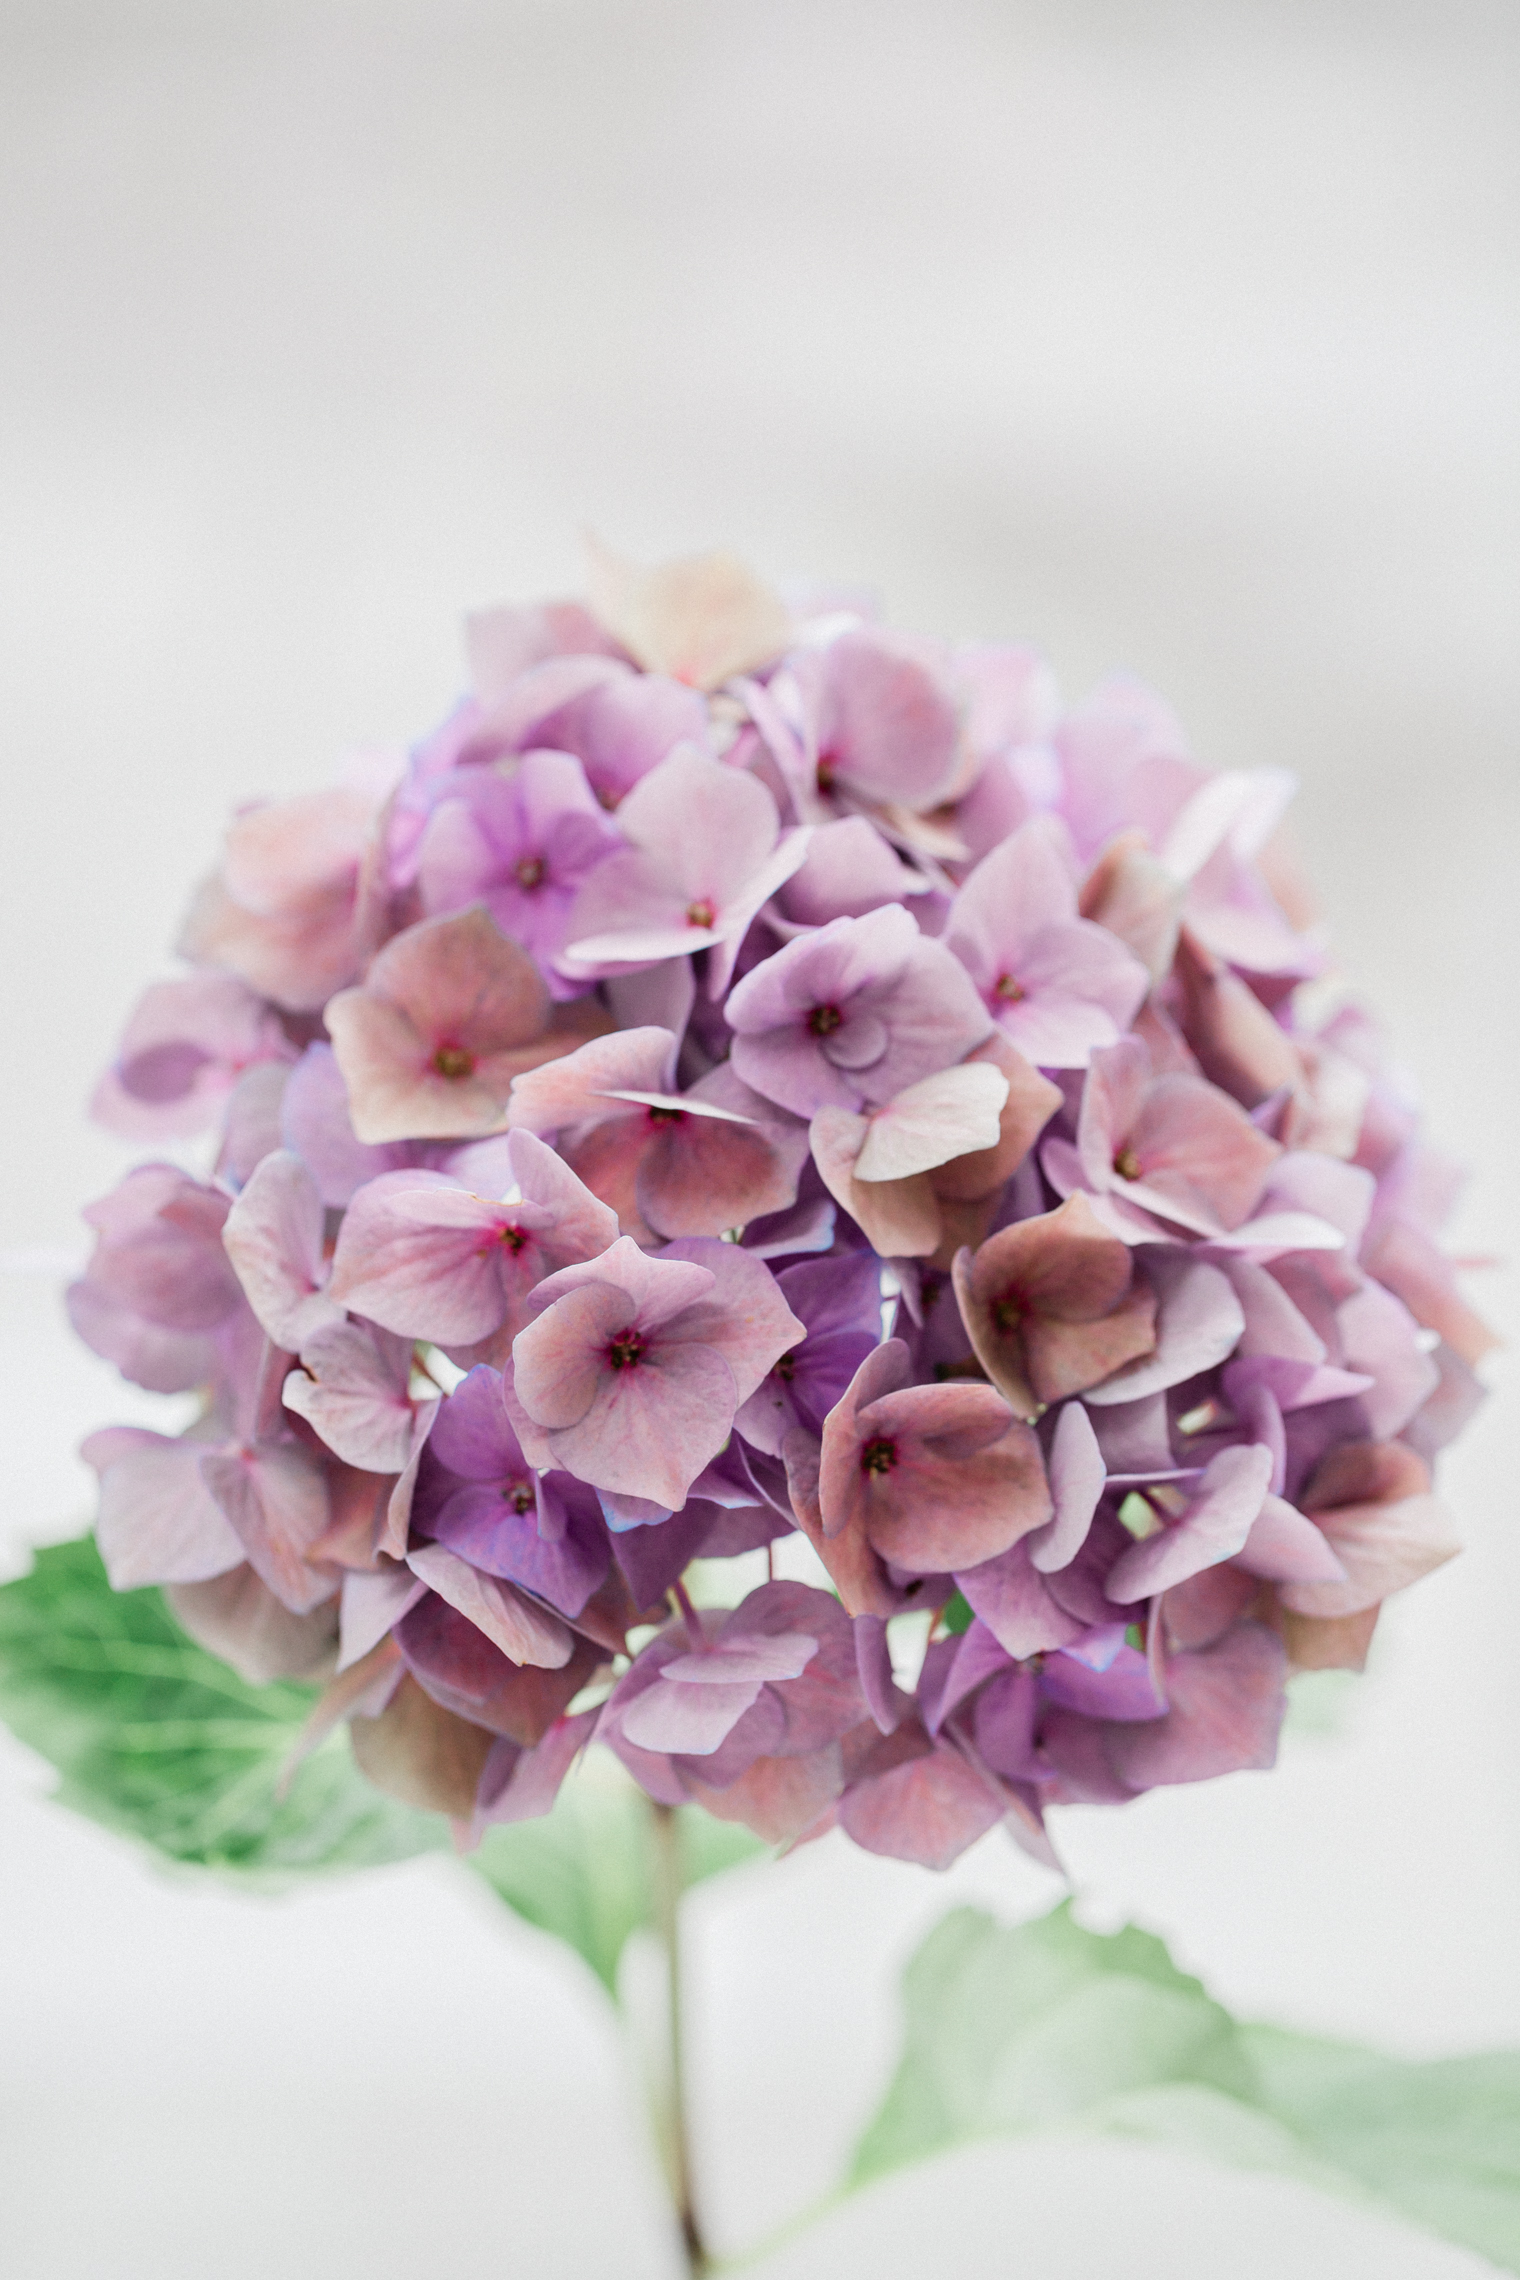 Hydrangea Lead Image - Pandemic Opportunity for Local Growers